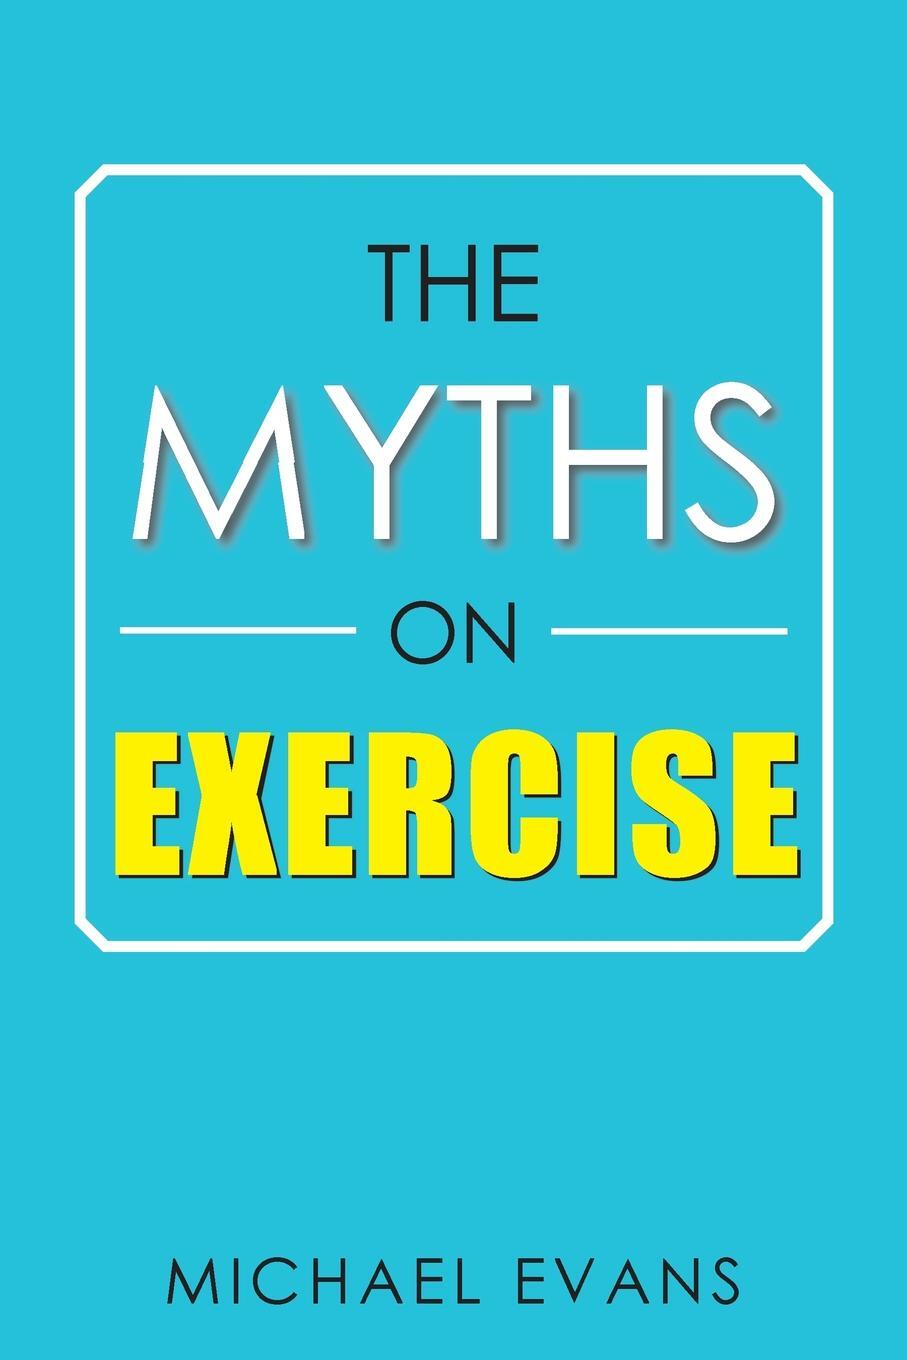 Michael Evans. The Myths on Exercise